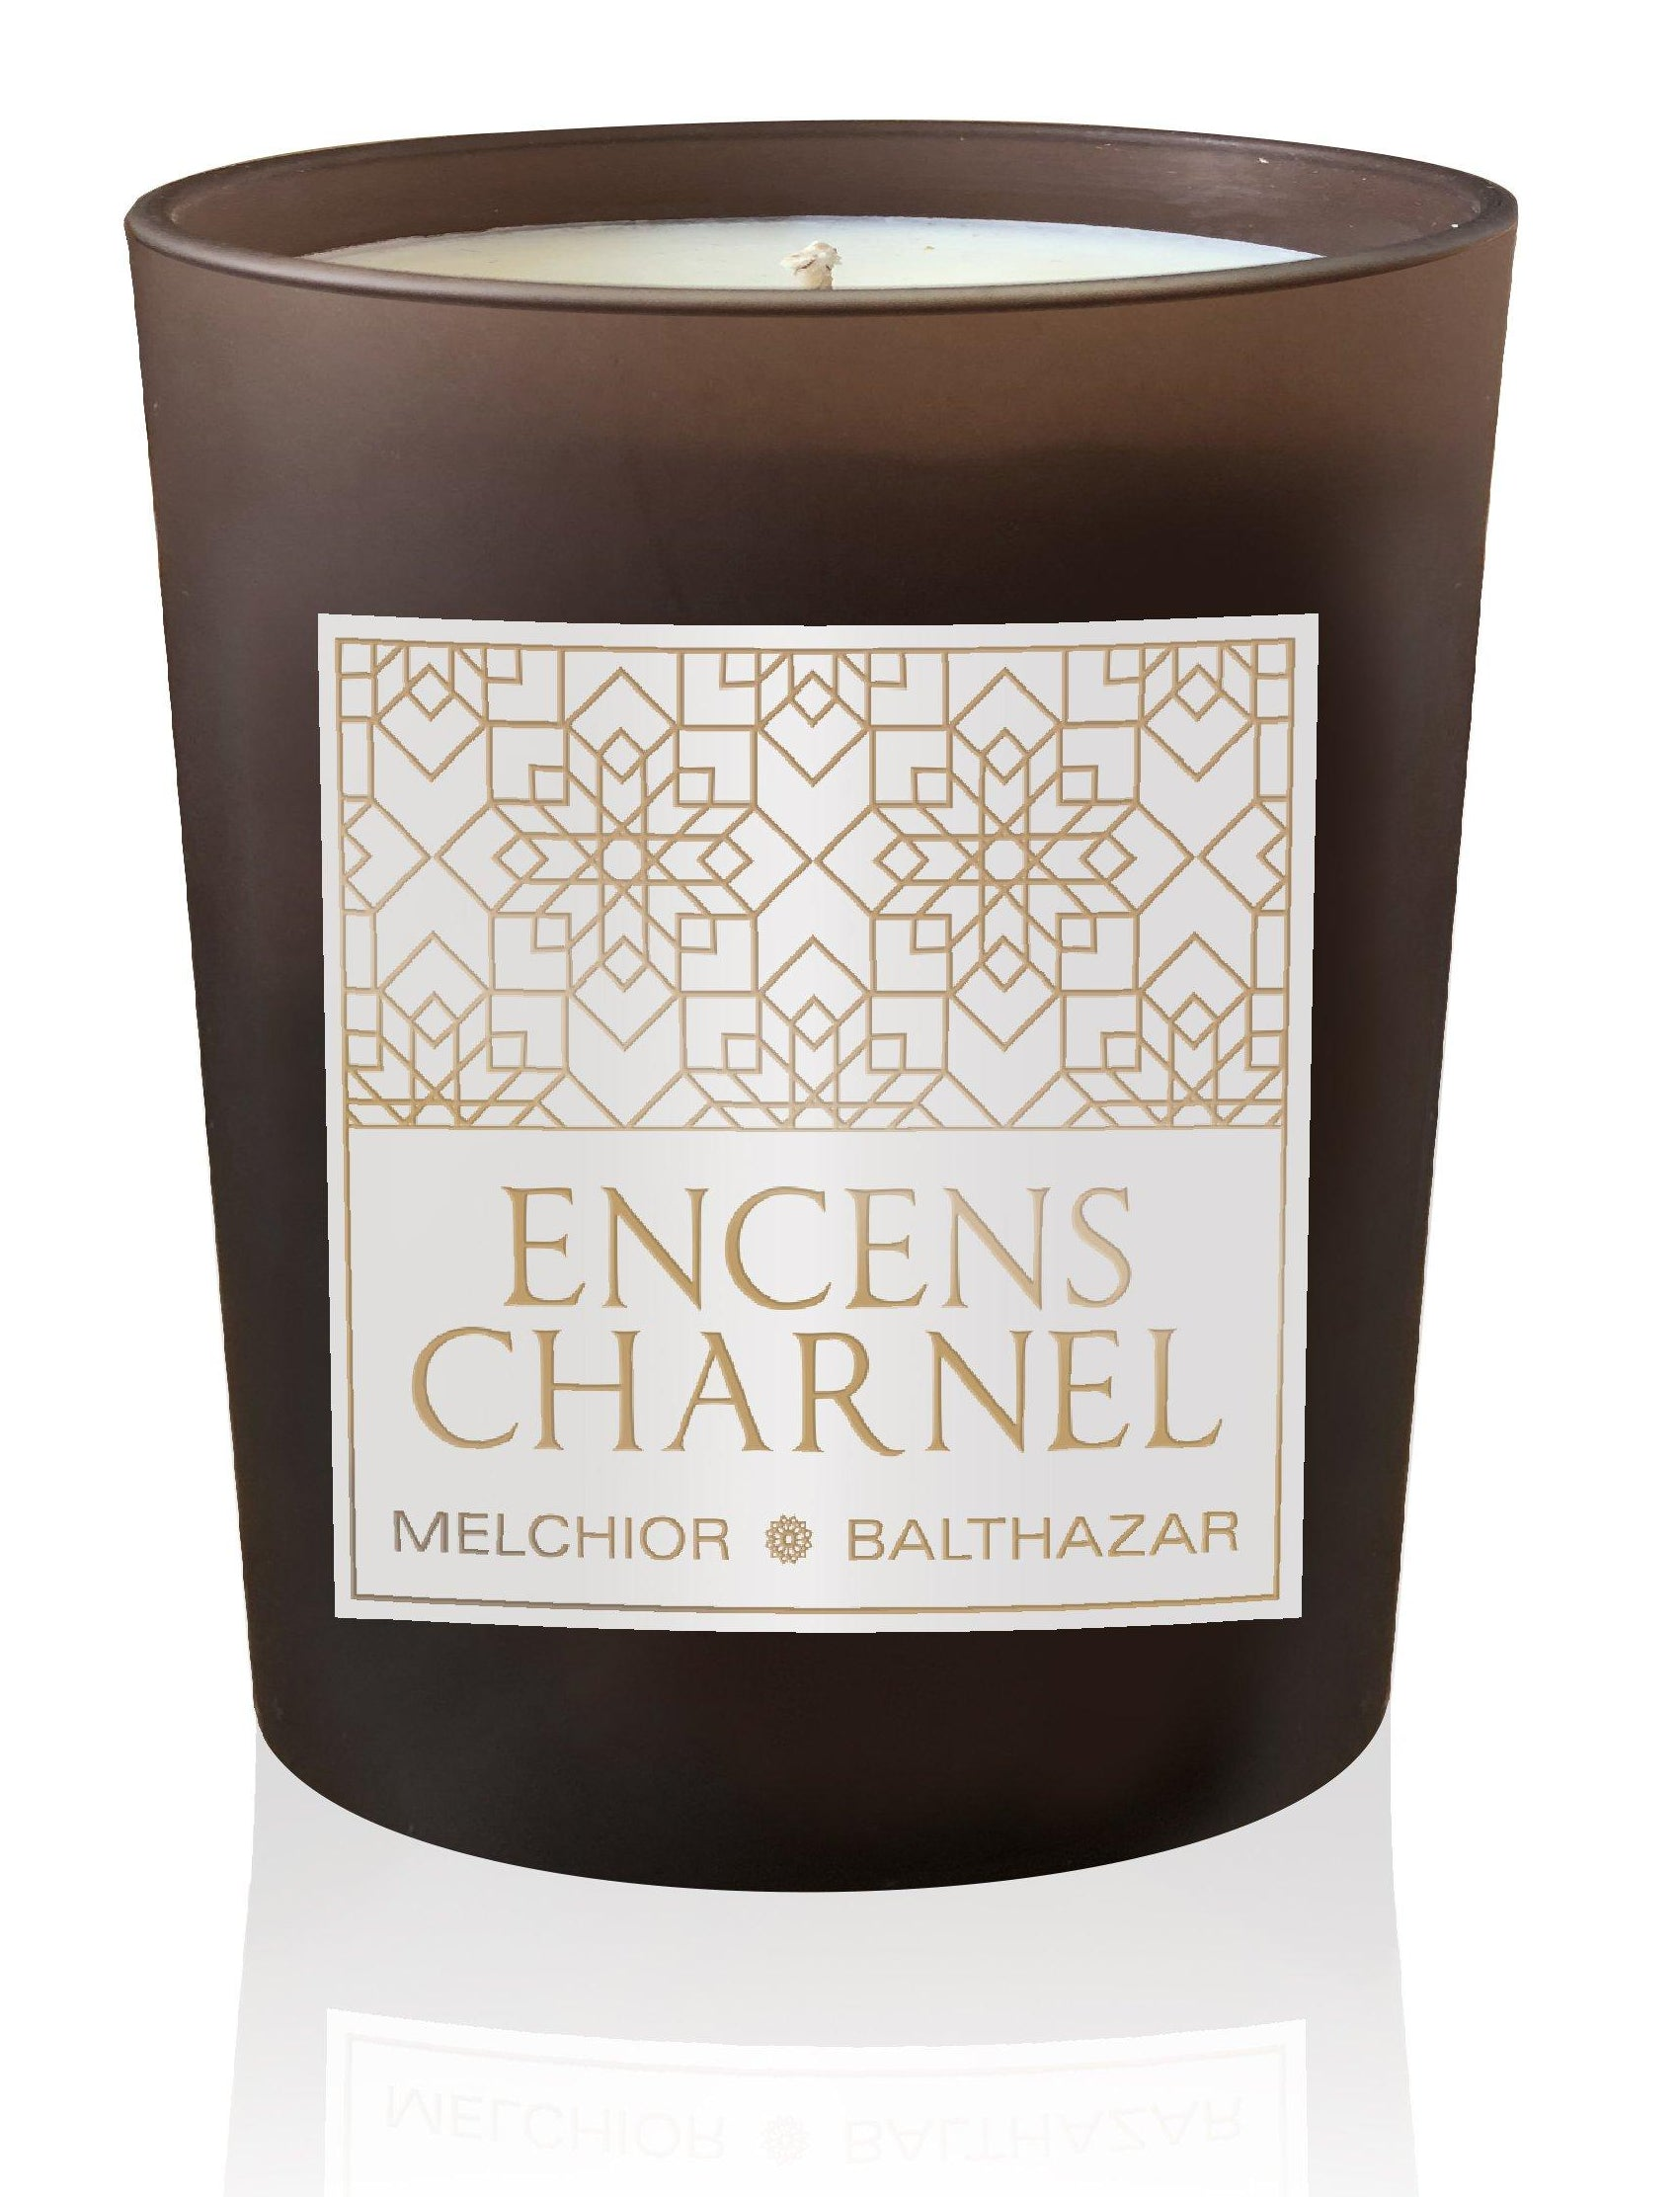 Candles - Melchior & Balthazar